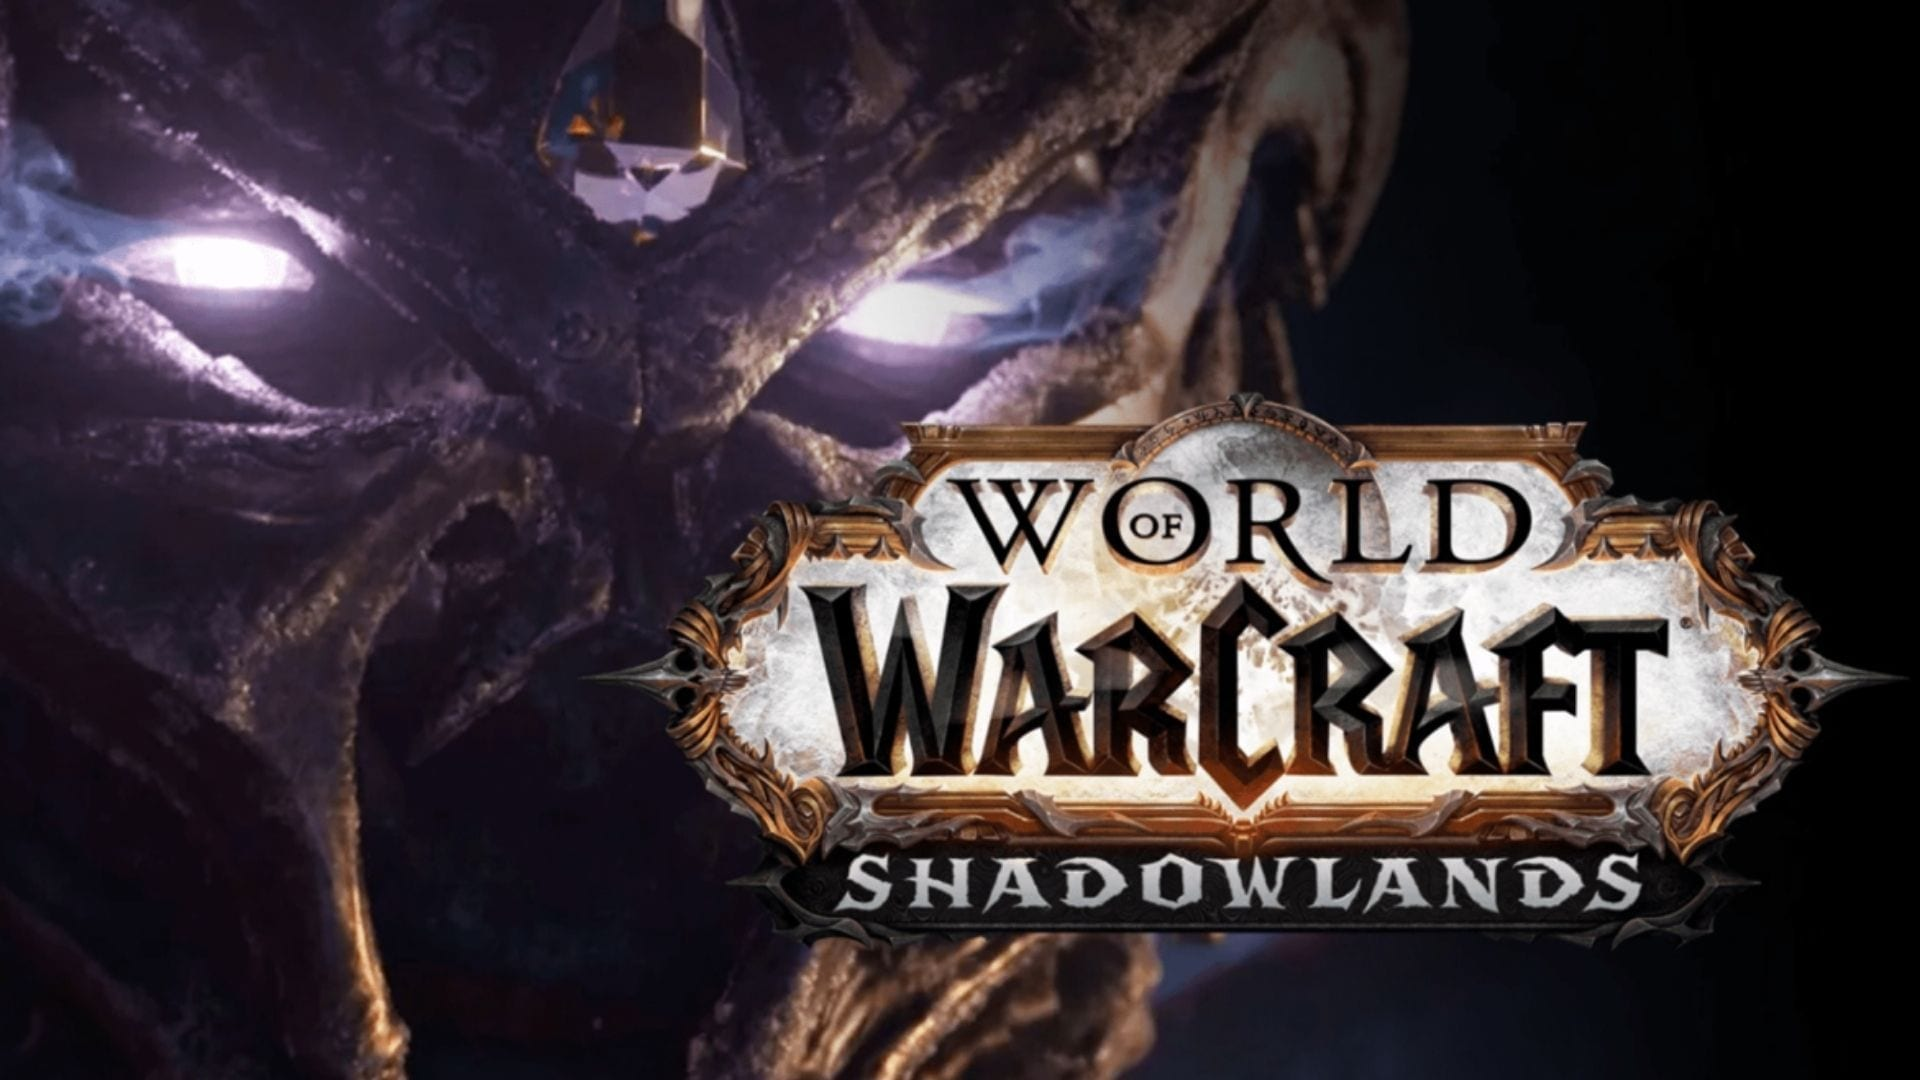 Word of Warcraft Shadowlands